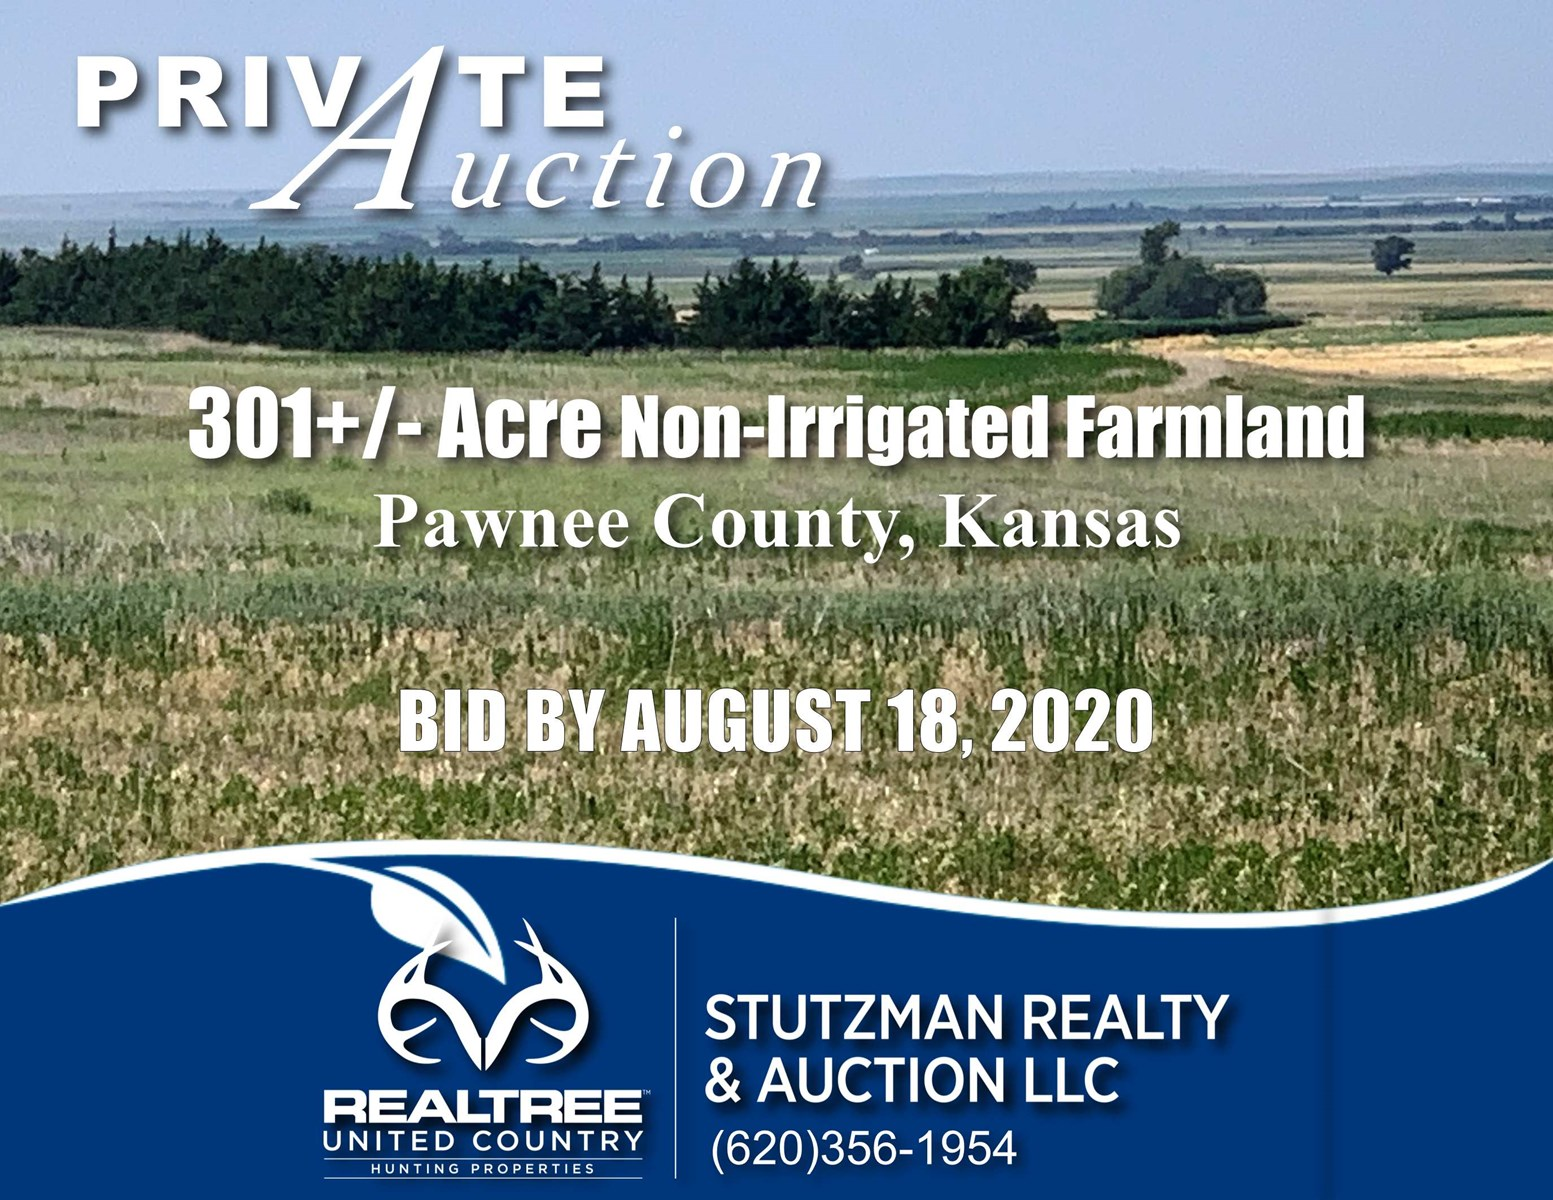 PAWNEE COUNTY, KS ~ 301+/- ACRE CROPLAND ~ PRIVATE AUCTION